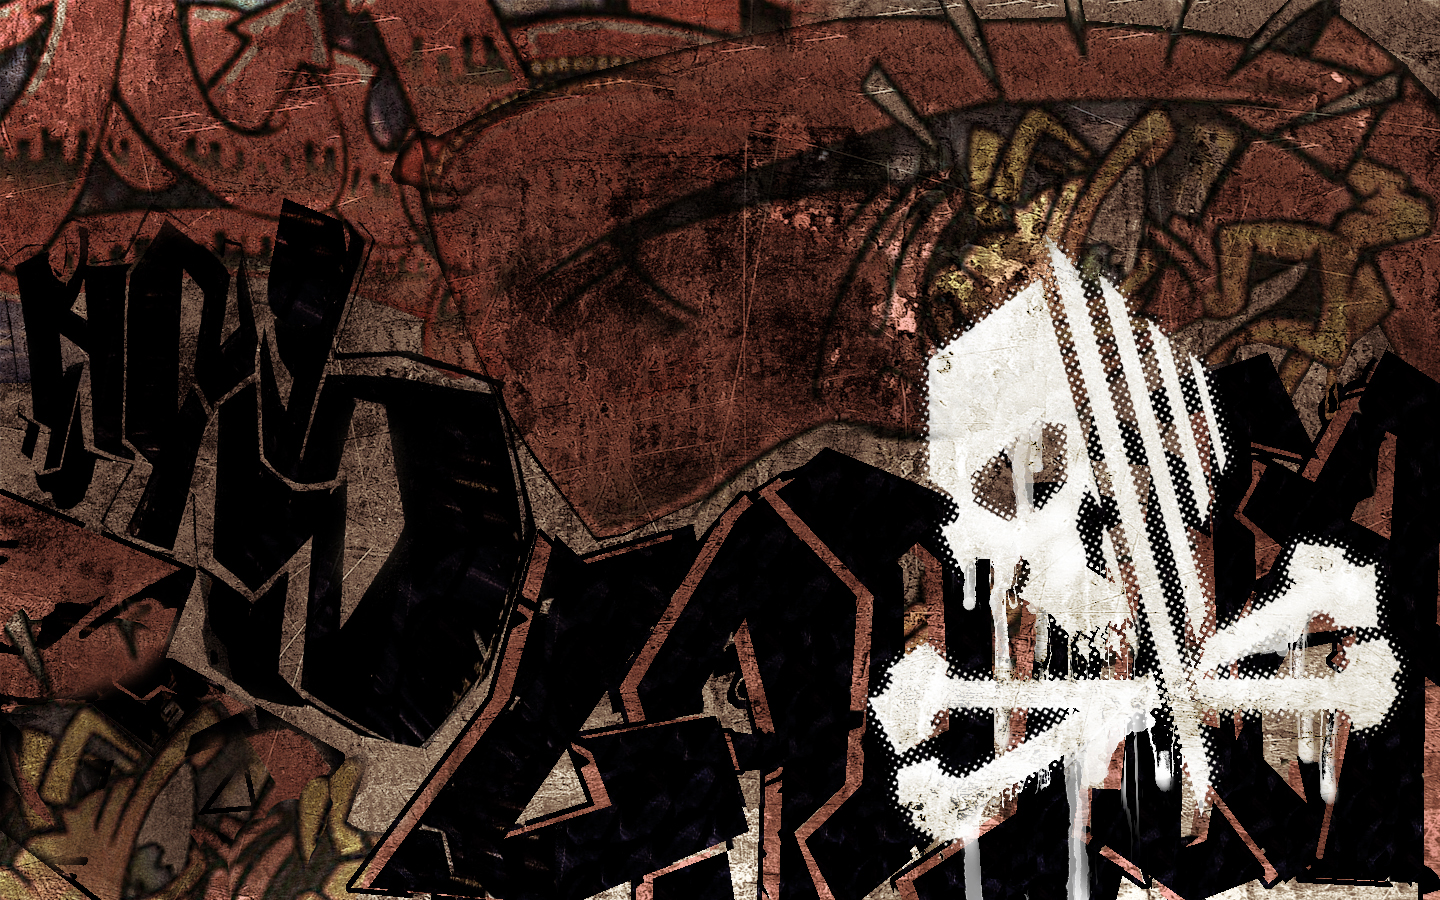 graffiti wallpaper skull hd - photo #4